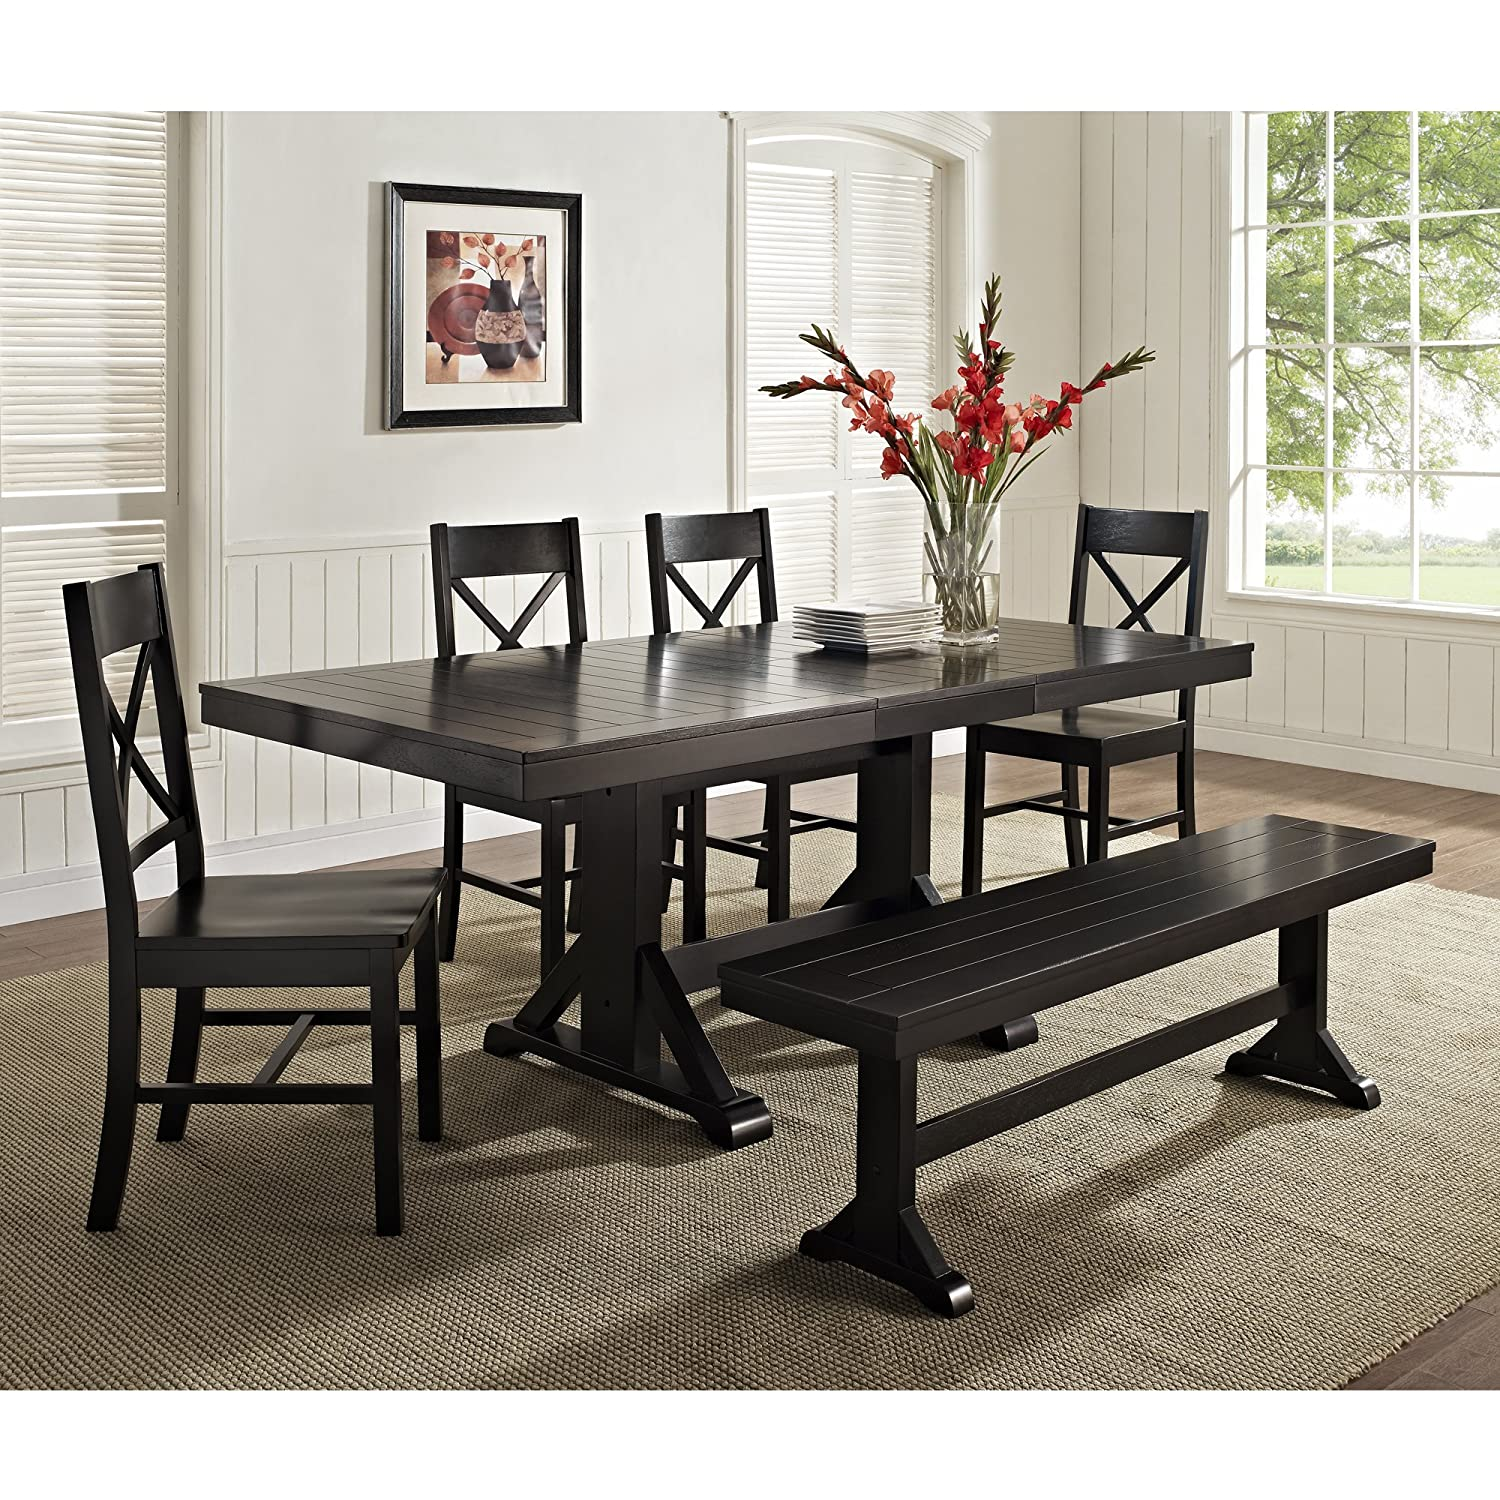 amazoncom we furniture solid wood black dining bench kitchen dining - Wooden Dining Table With Chairs